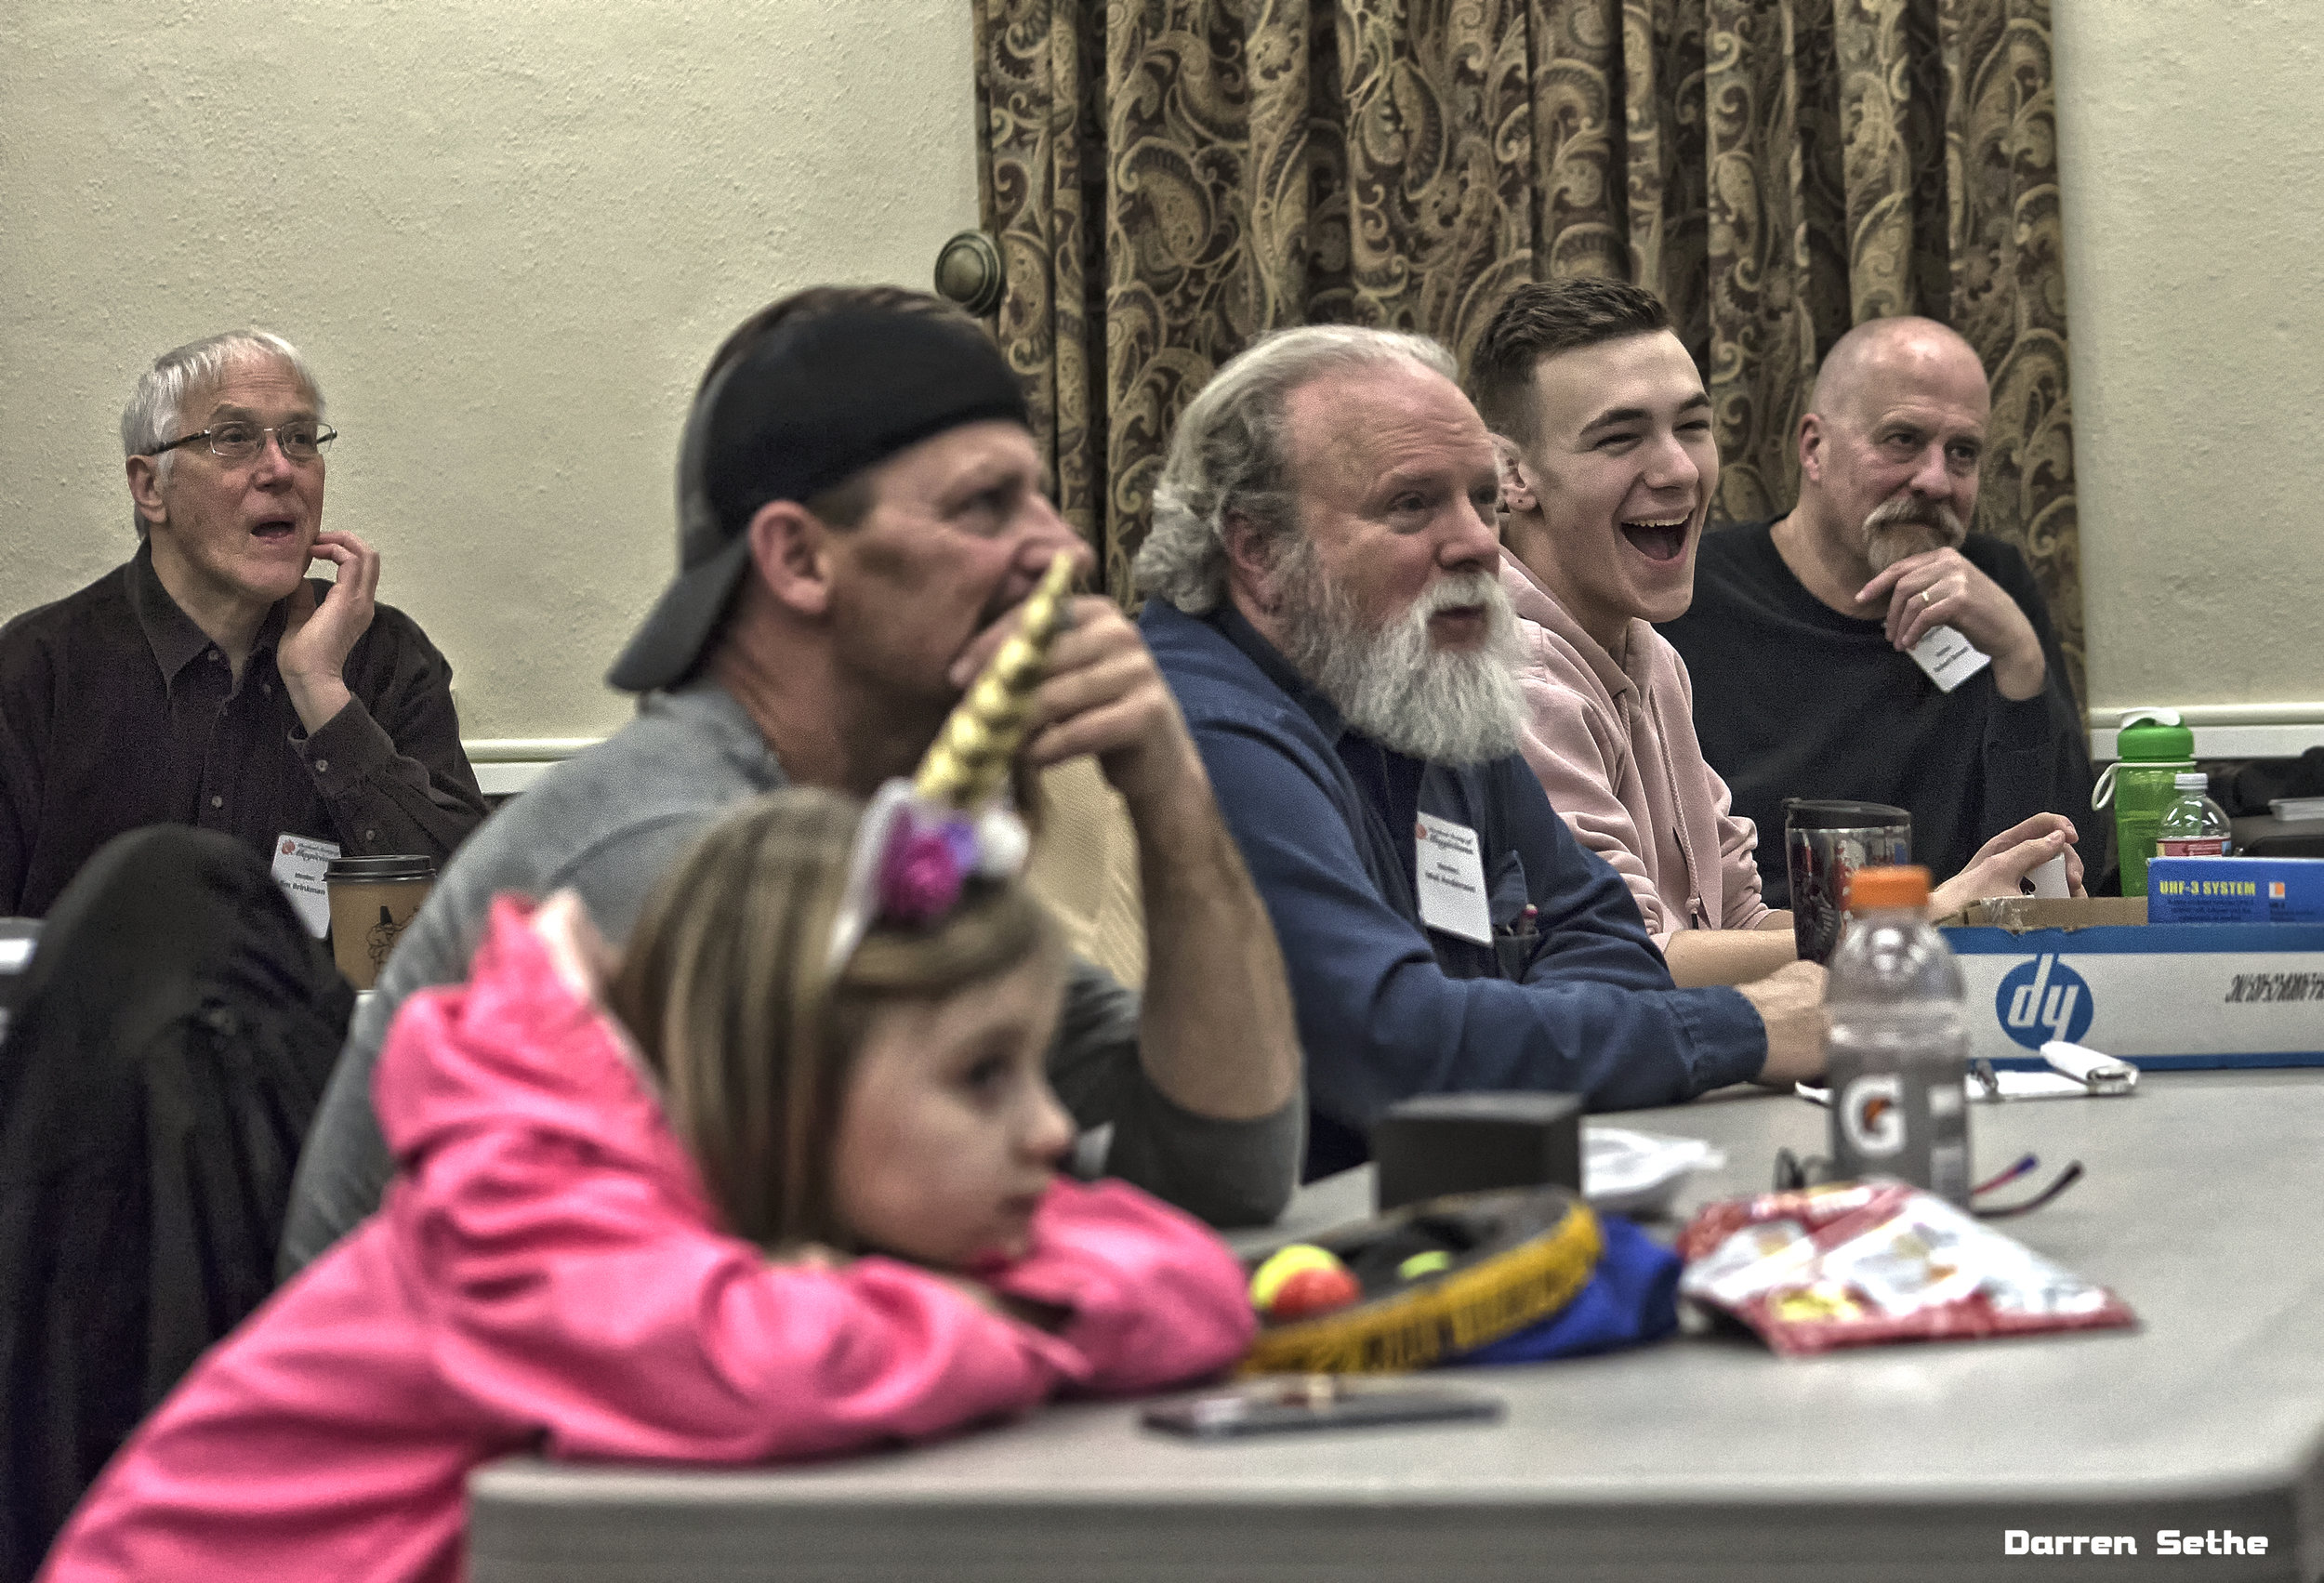 Jim Brinkman, Carey Heim, Mel Anderson, Robert Brown, Gaetan Delatour, and our special unicorn guest all deep in thought…2019. (Photo by Darren Sethe 2019).